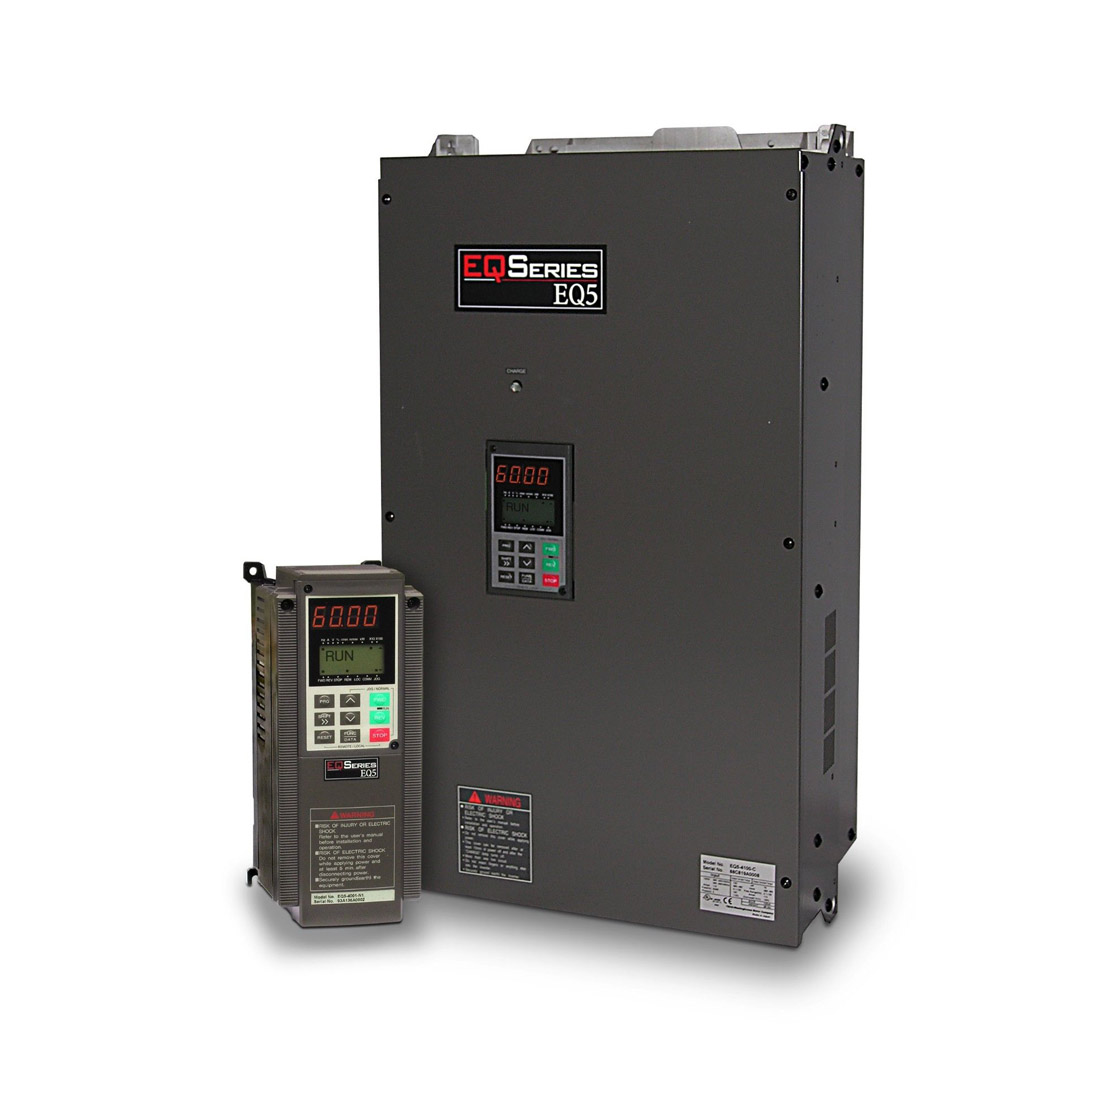 Teco eq5 series for Vfd for 5hp motor